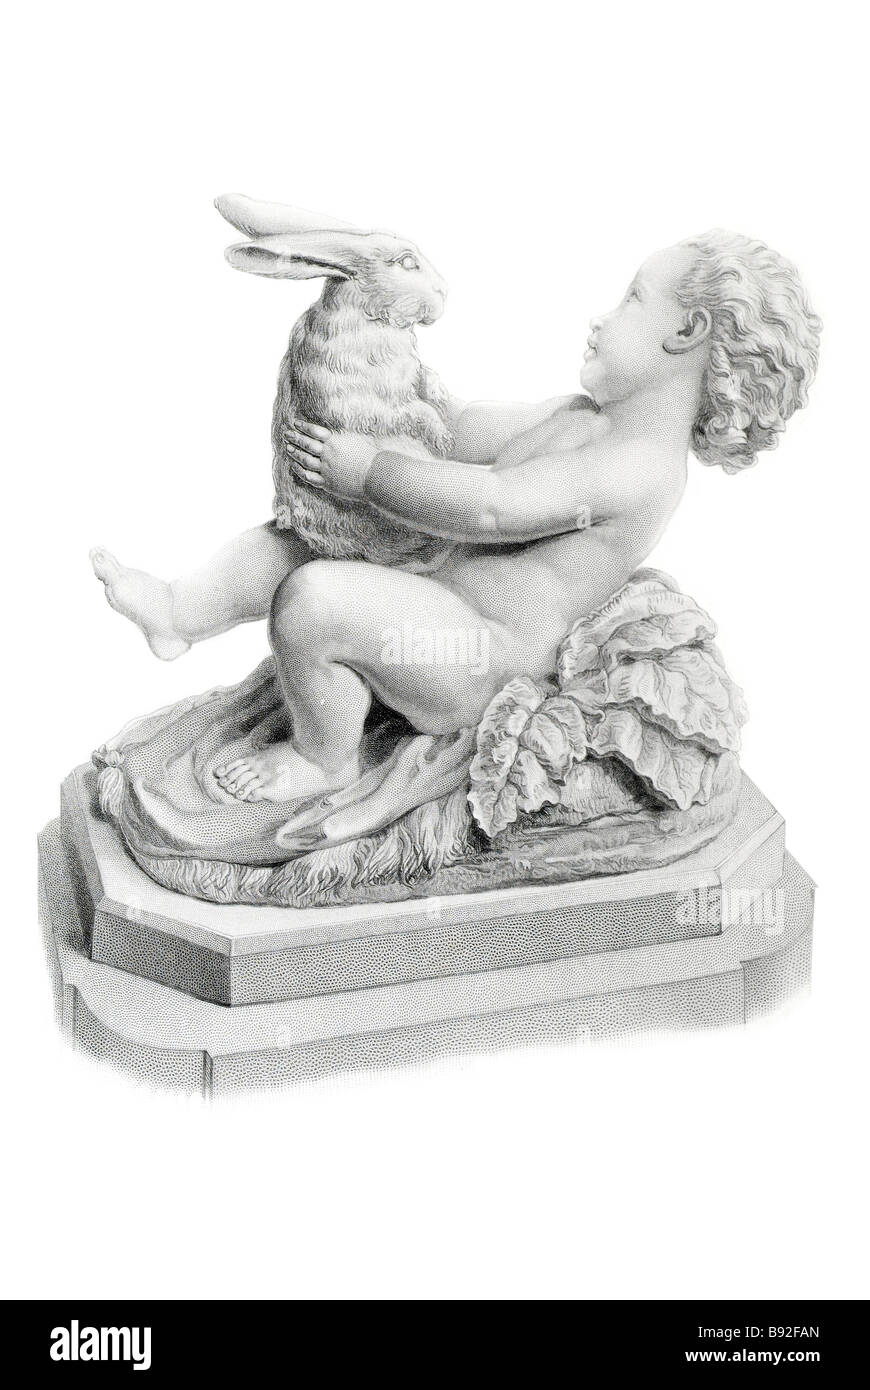 Sportive innocence G Burnard Chubby boy hercules infant rabbit humor Sculpture marble artwork shaping light stone - Stock Image